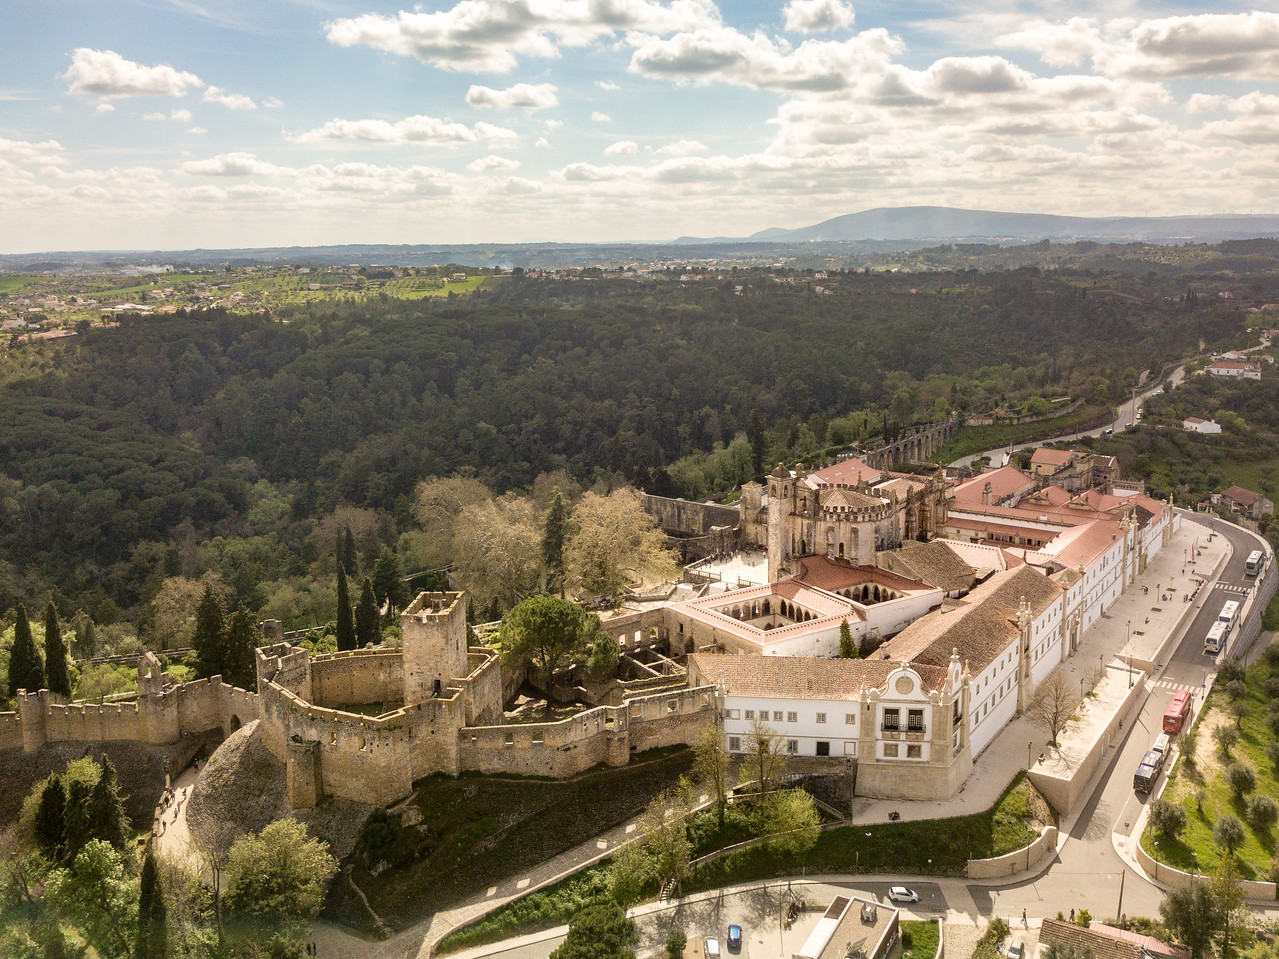 Drone Image of Convento de Cristo and Tomar Castle in Portugal